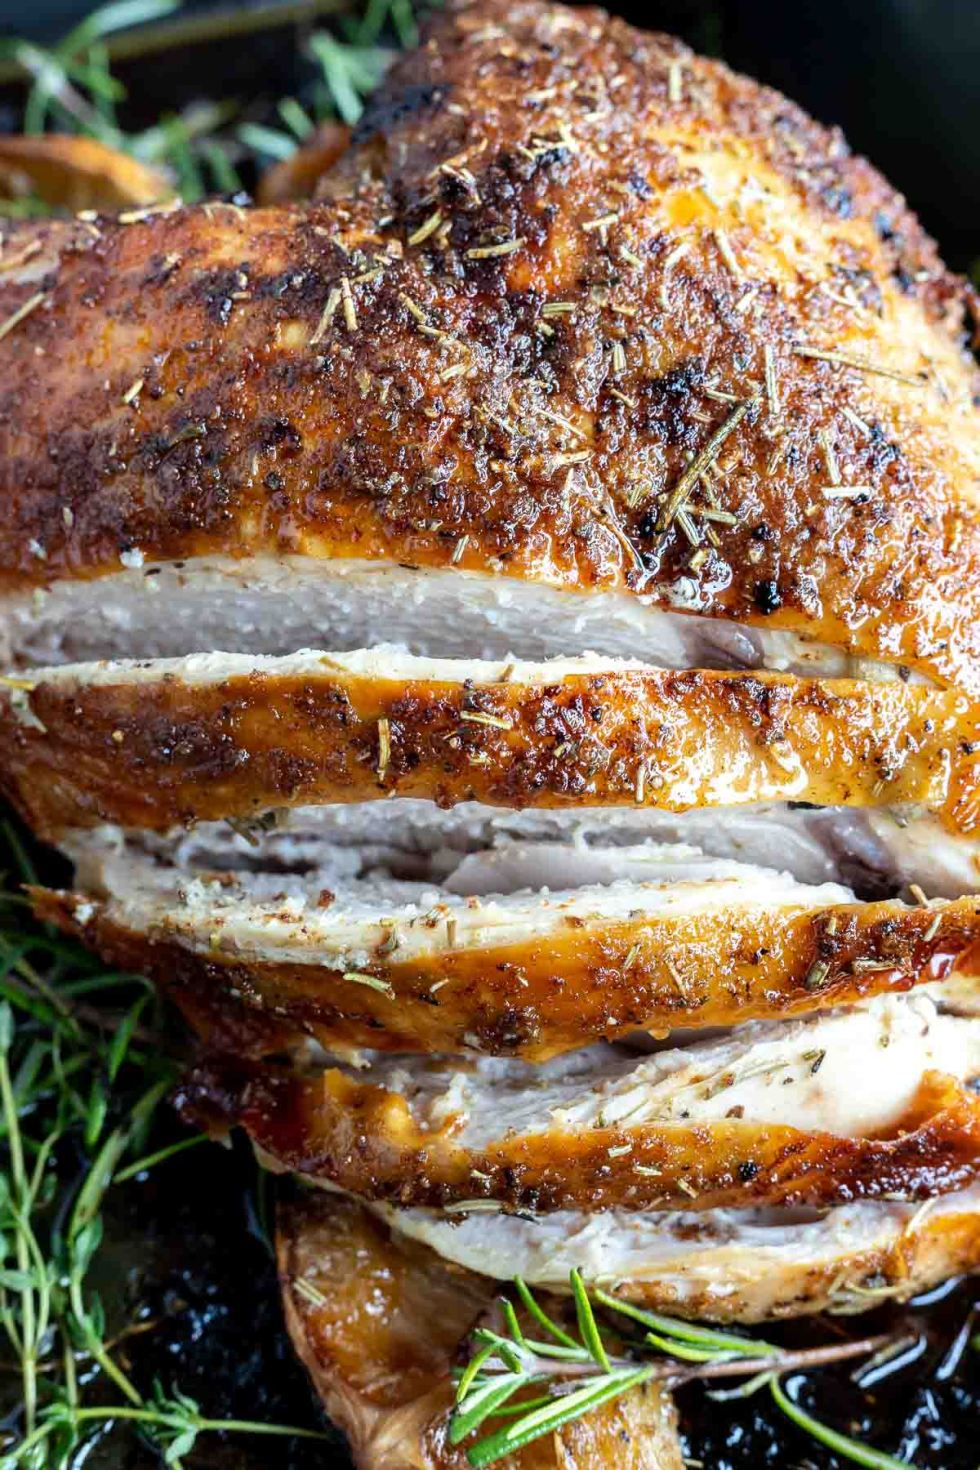 cooked turkey breast sliced showing the white meat inside